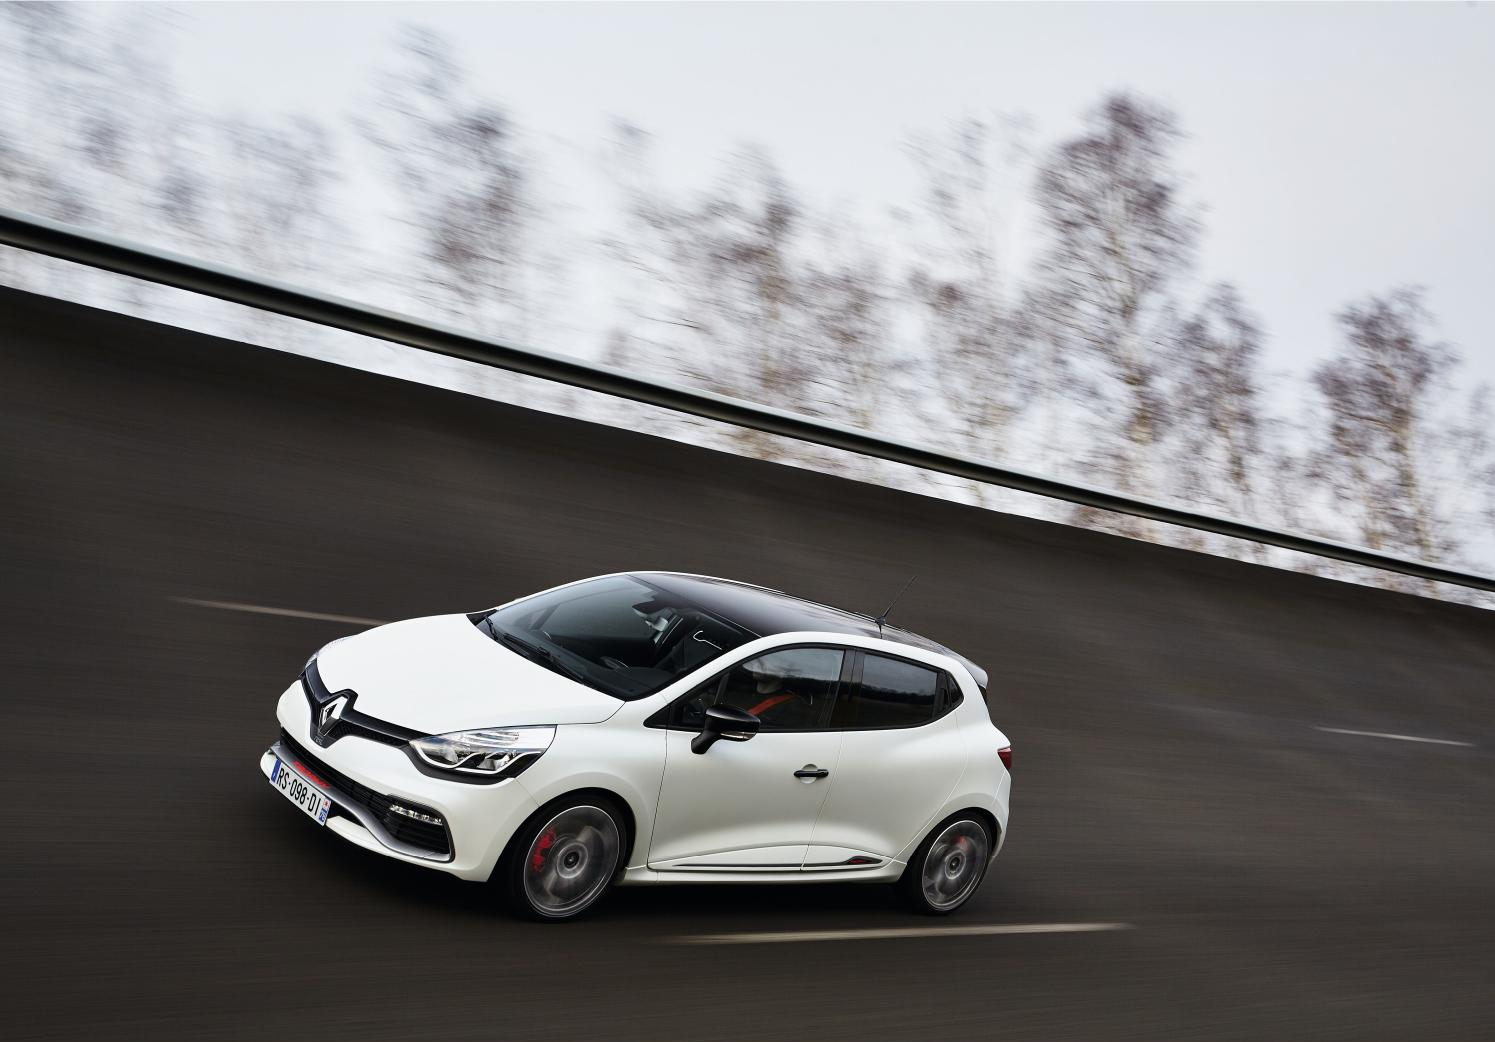 Renault Clio RS 220 Trophy 2